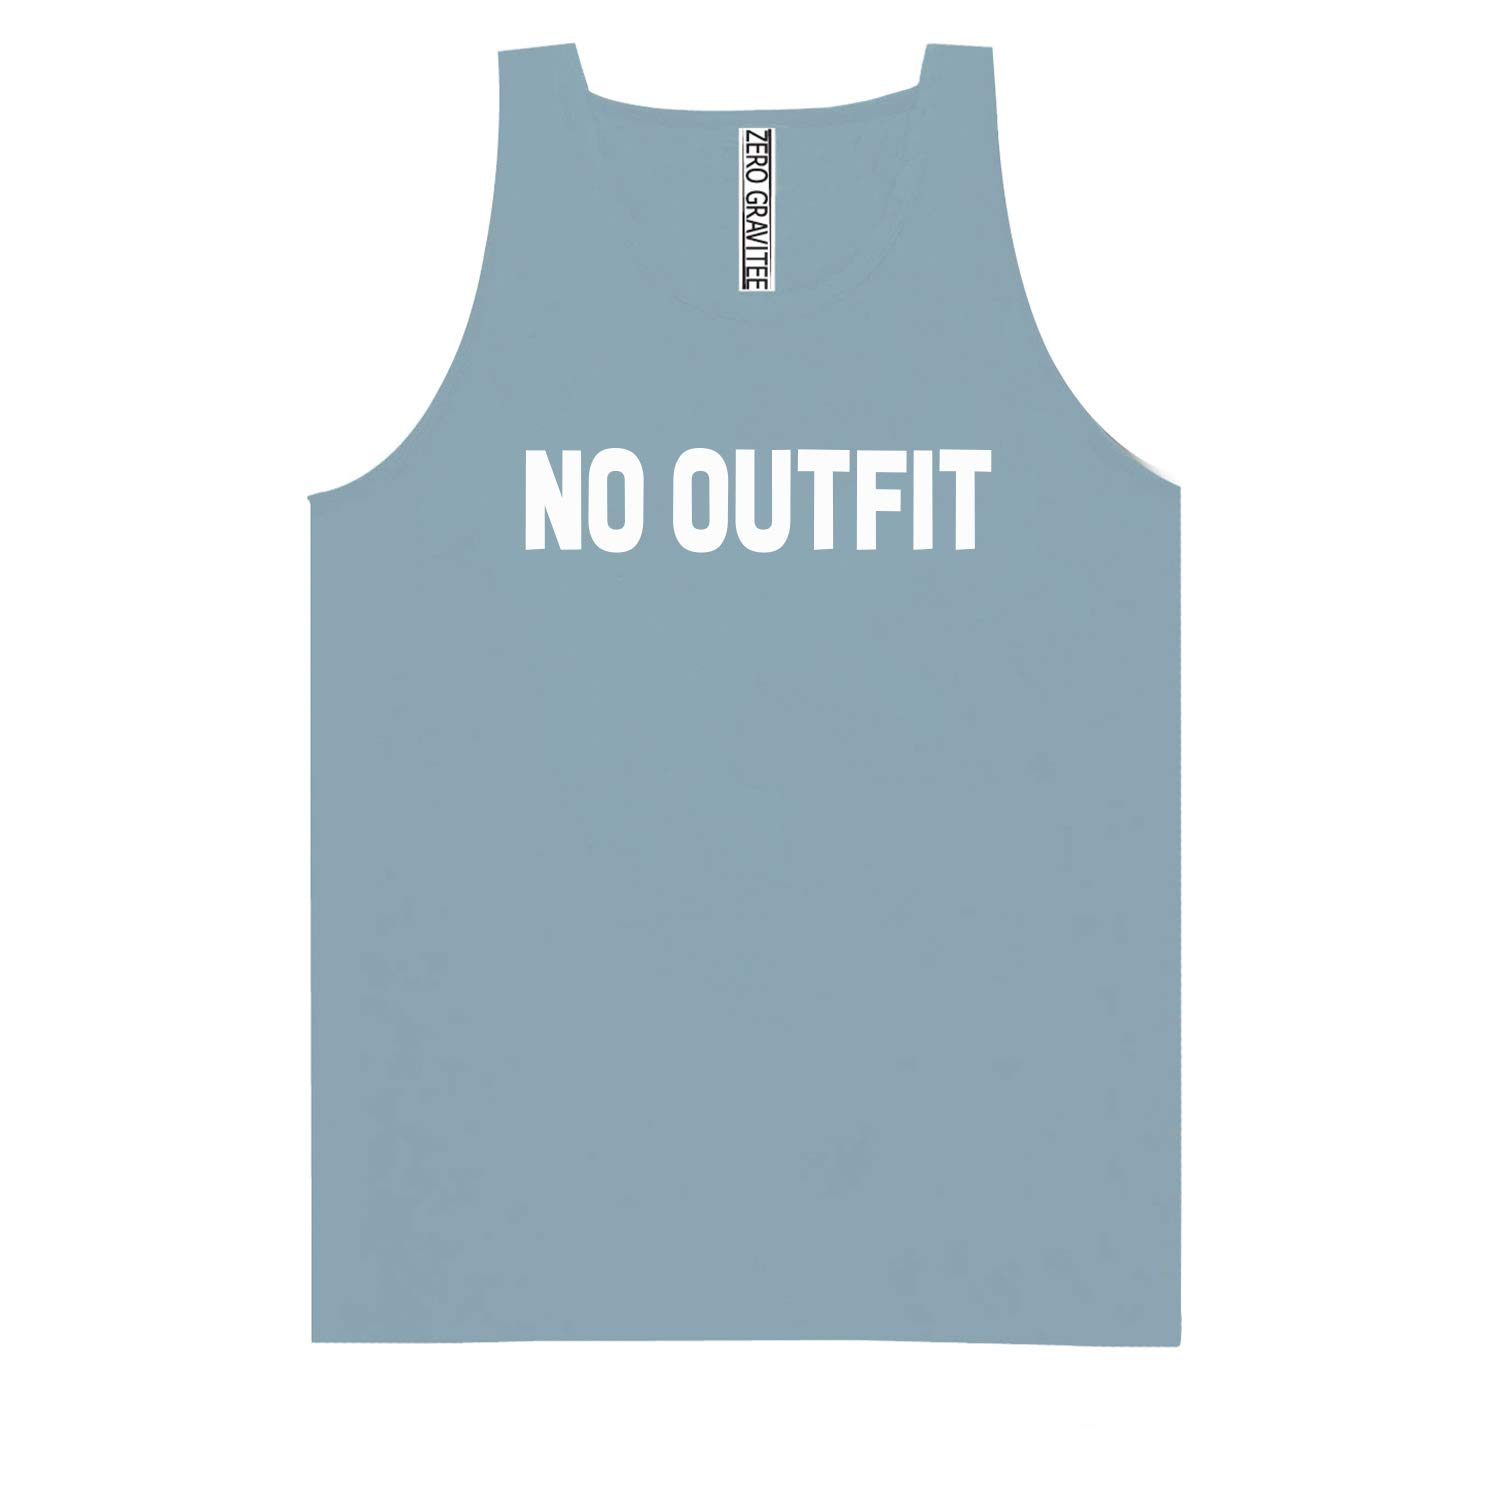 NO Outfit Adult Pigment Dye Tank Top